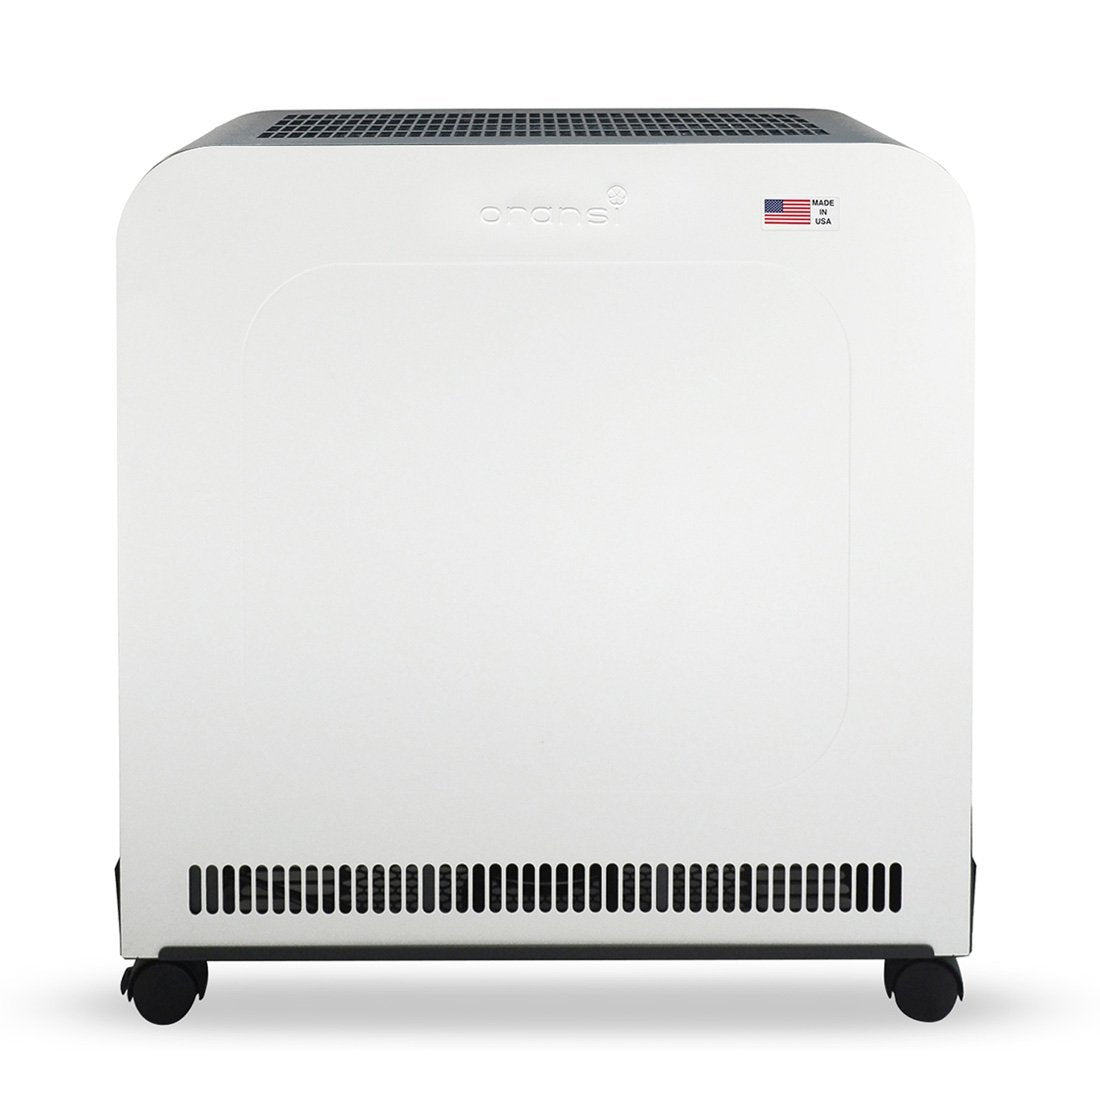 ERIK650A air purifier for smoke